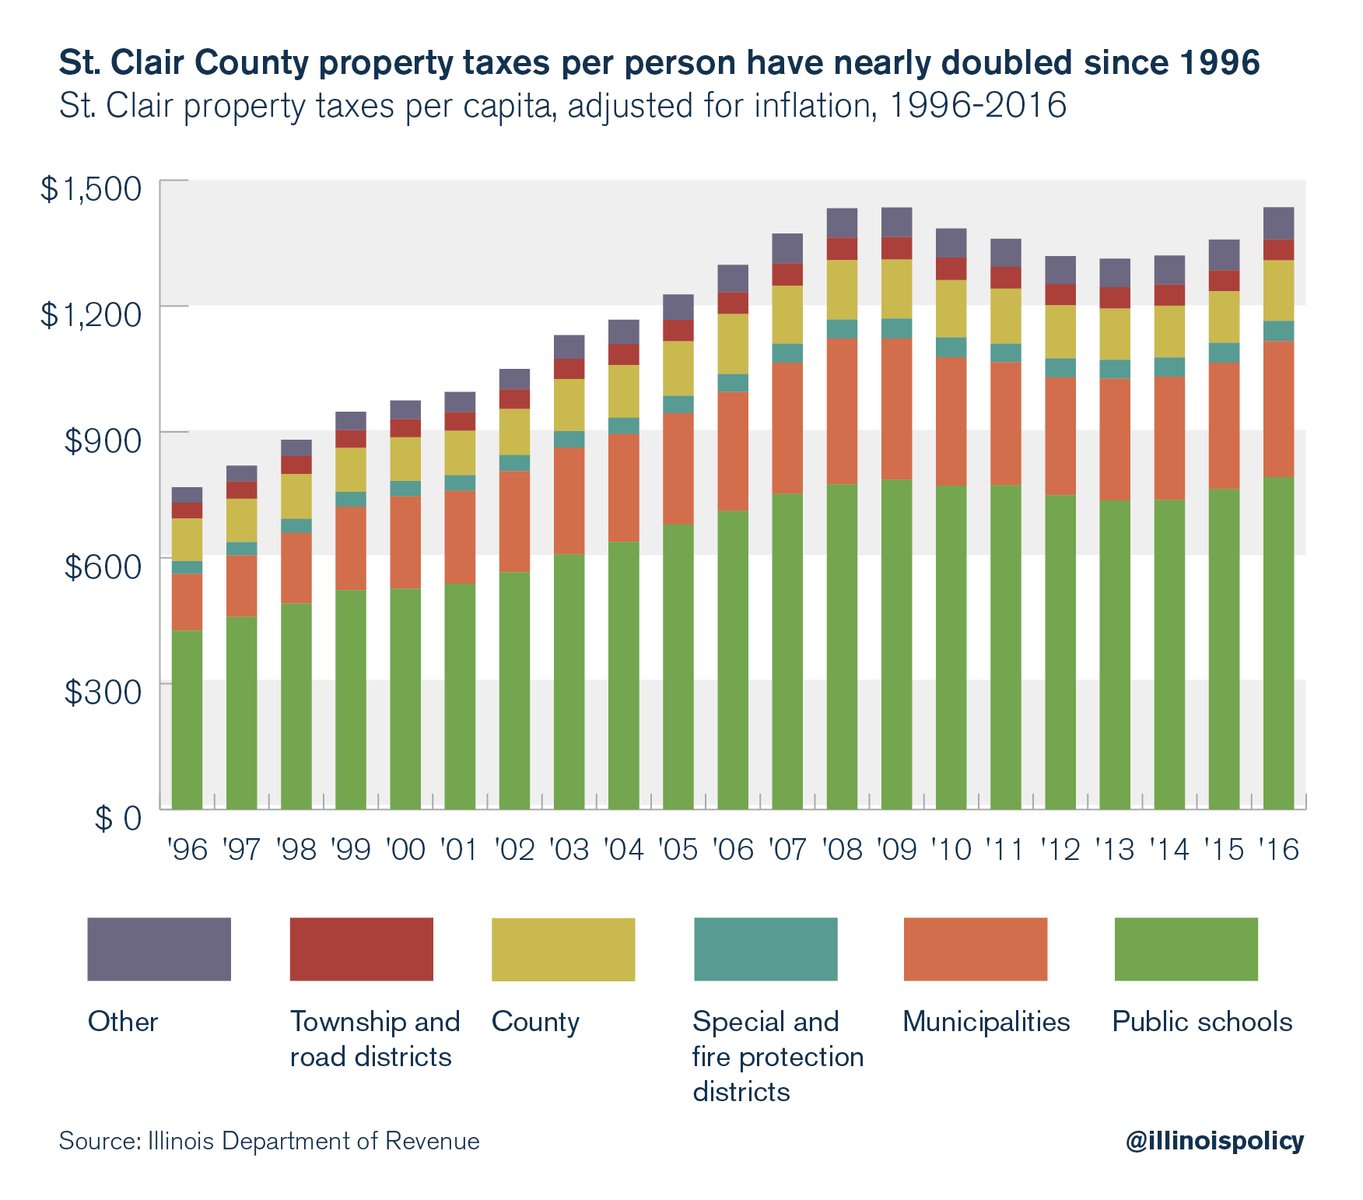 St. Clair County property taxes per person have nearly doubled since 1996